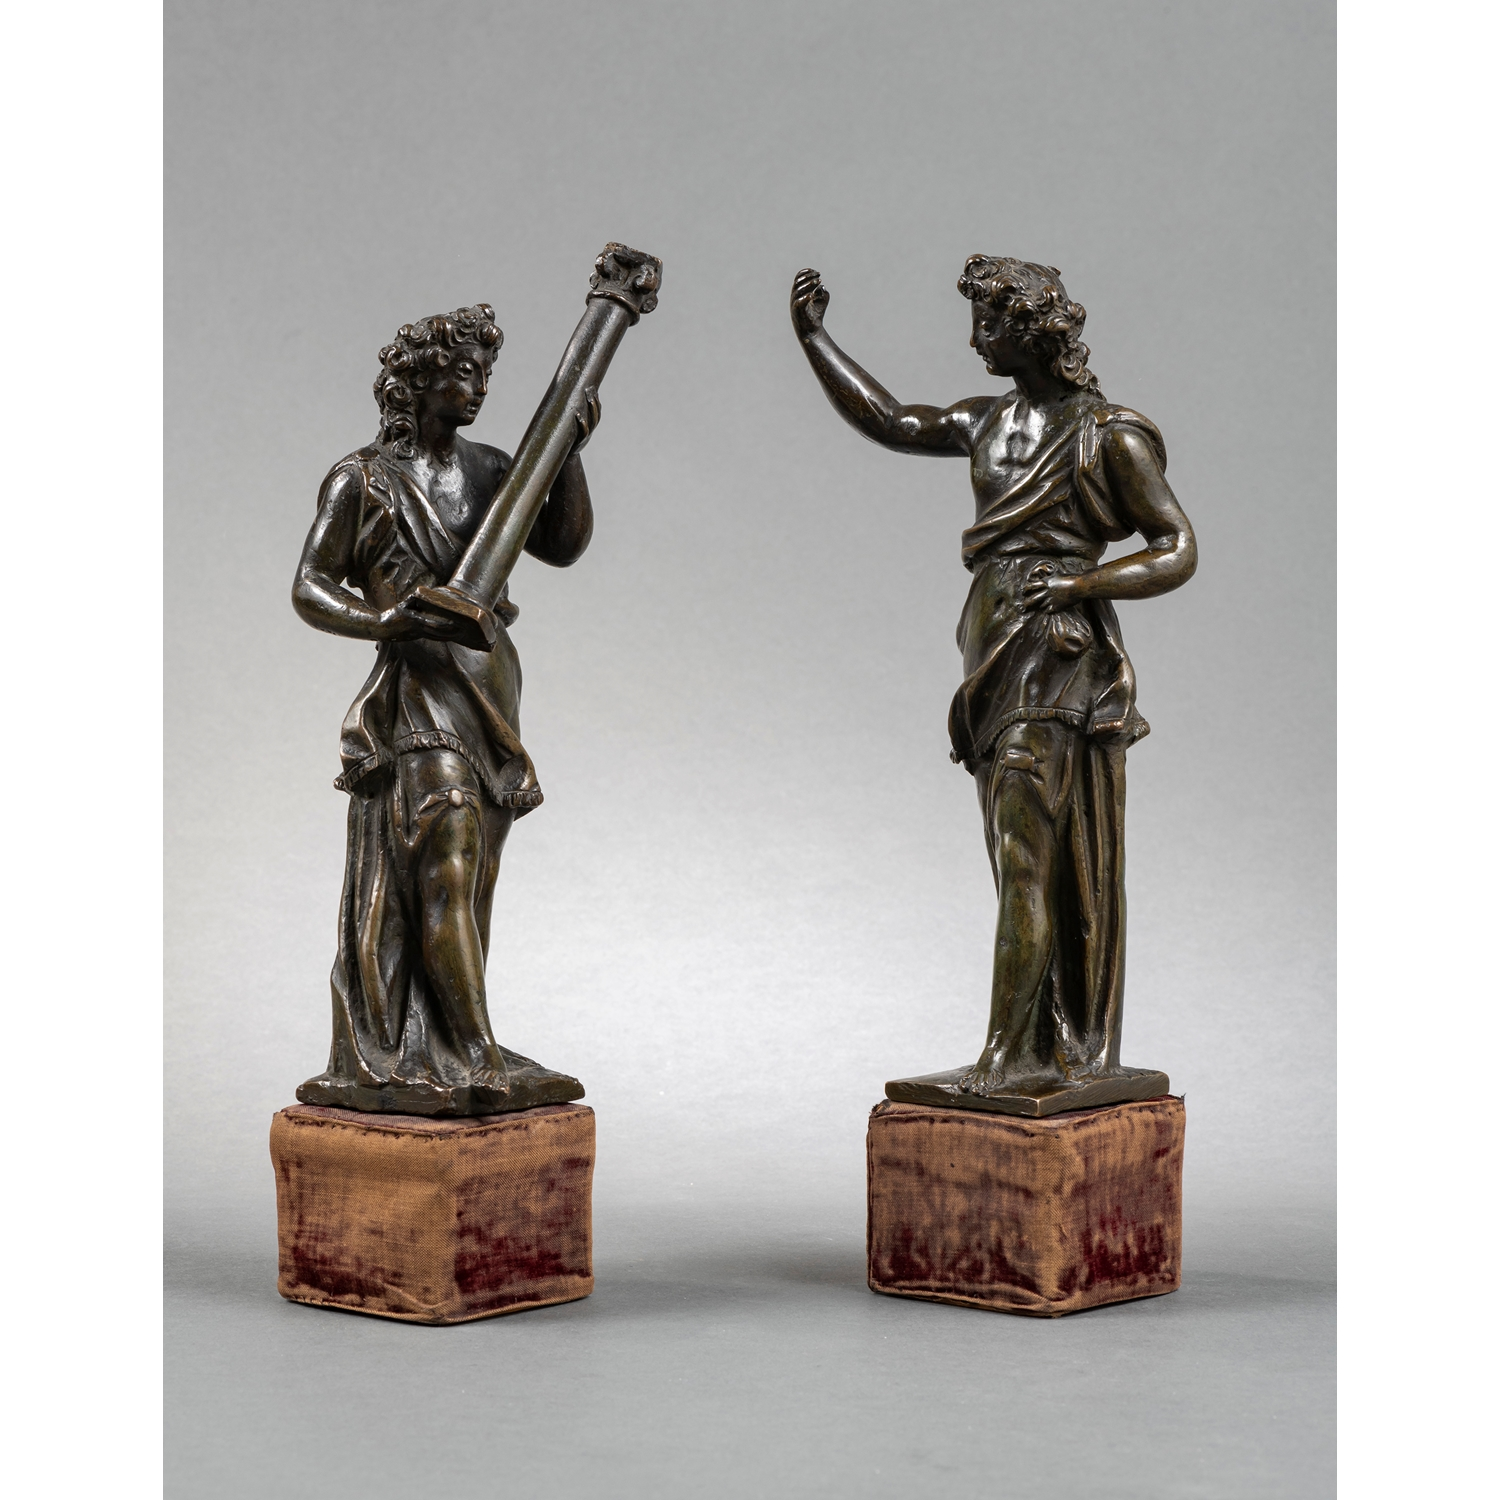 ANGELS WITH THE INSTRUMENTS OF THE PASSION VENICE END OF THE 16TH CENTURY